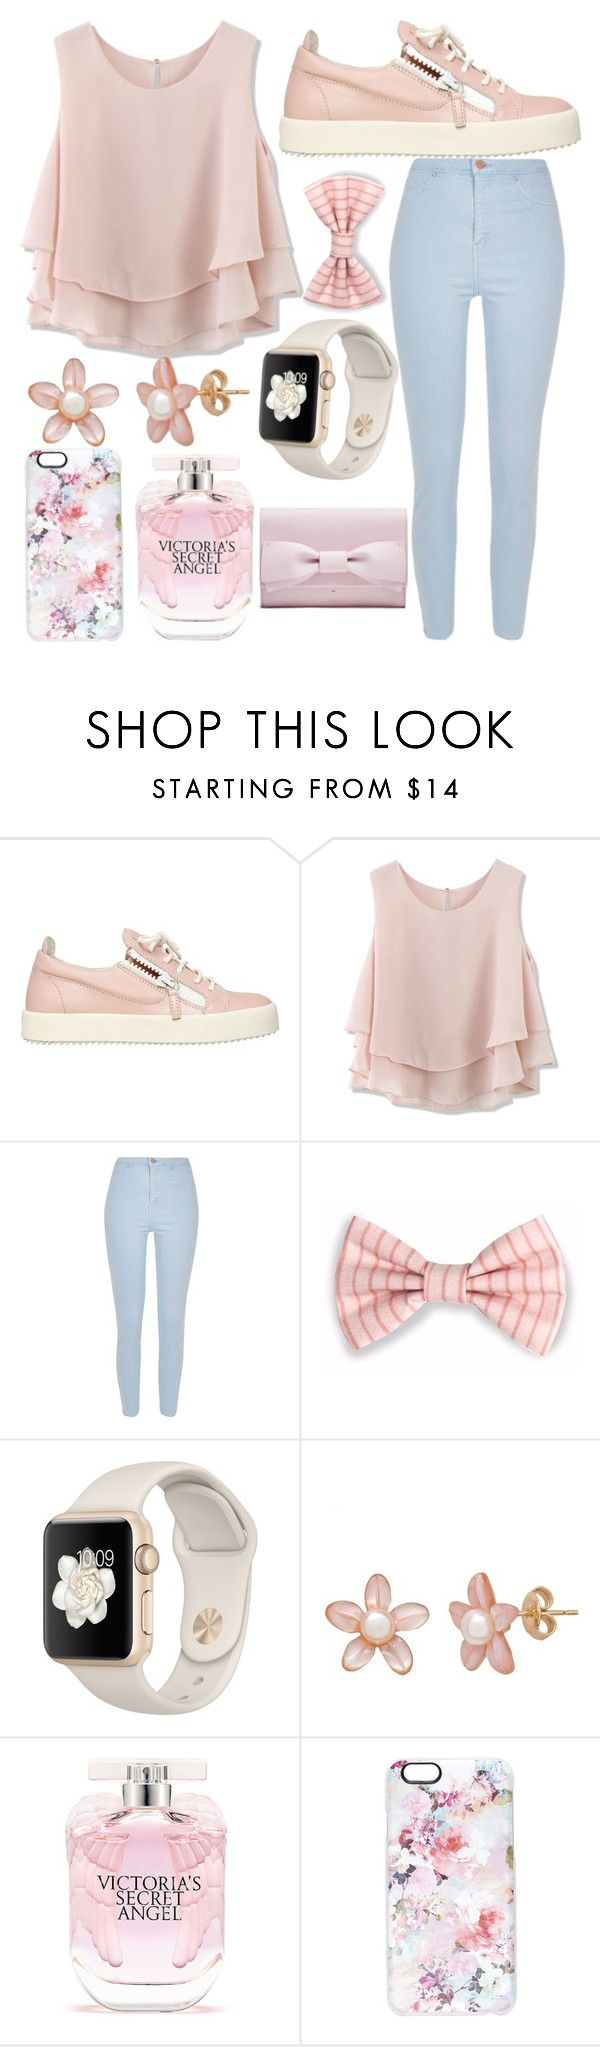 """Untitled #64"" by foreveritaly ❤ liked on Polyvore featuring Giuseppe Zanotti, Chicwish, River Island, Victoria's Secret and Casetify"